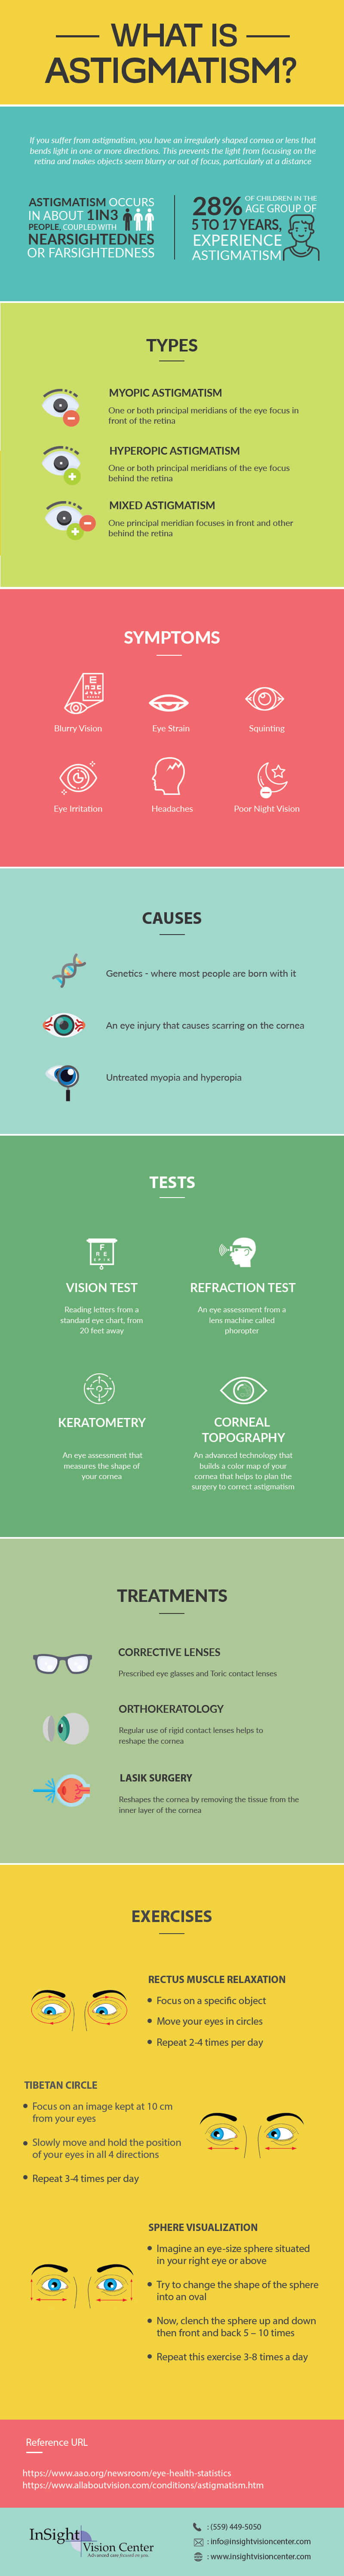 What-is-Astigmatism-infographic-plaza